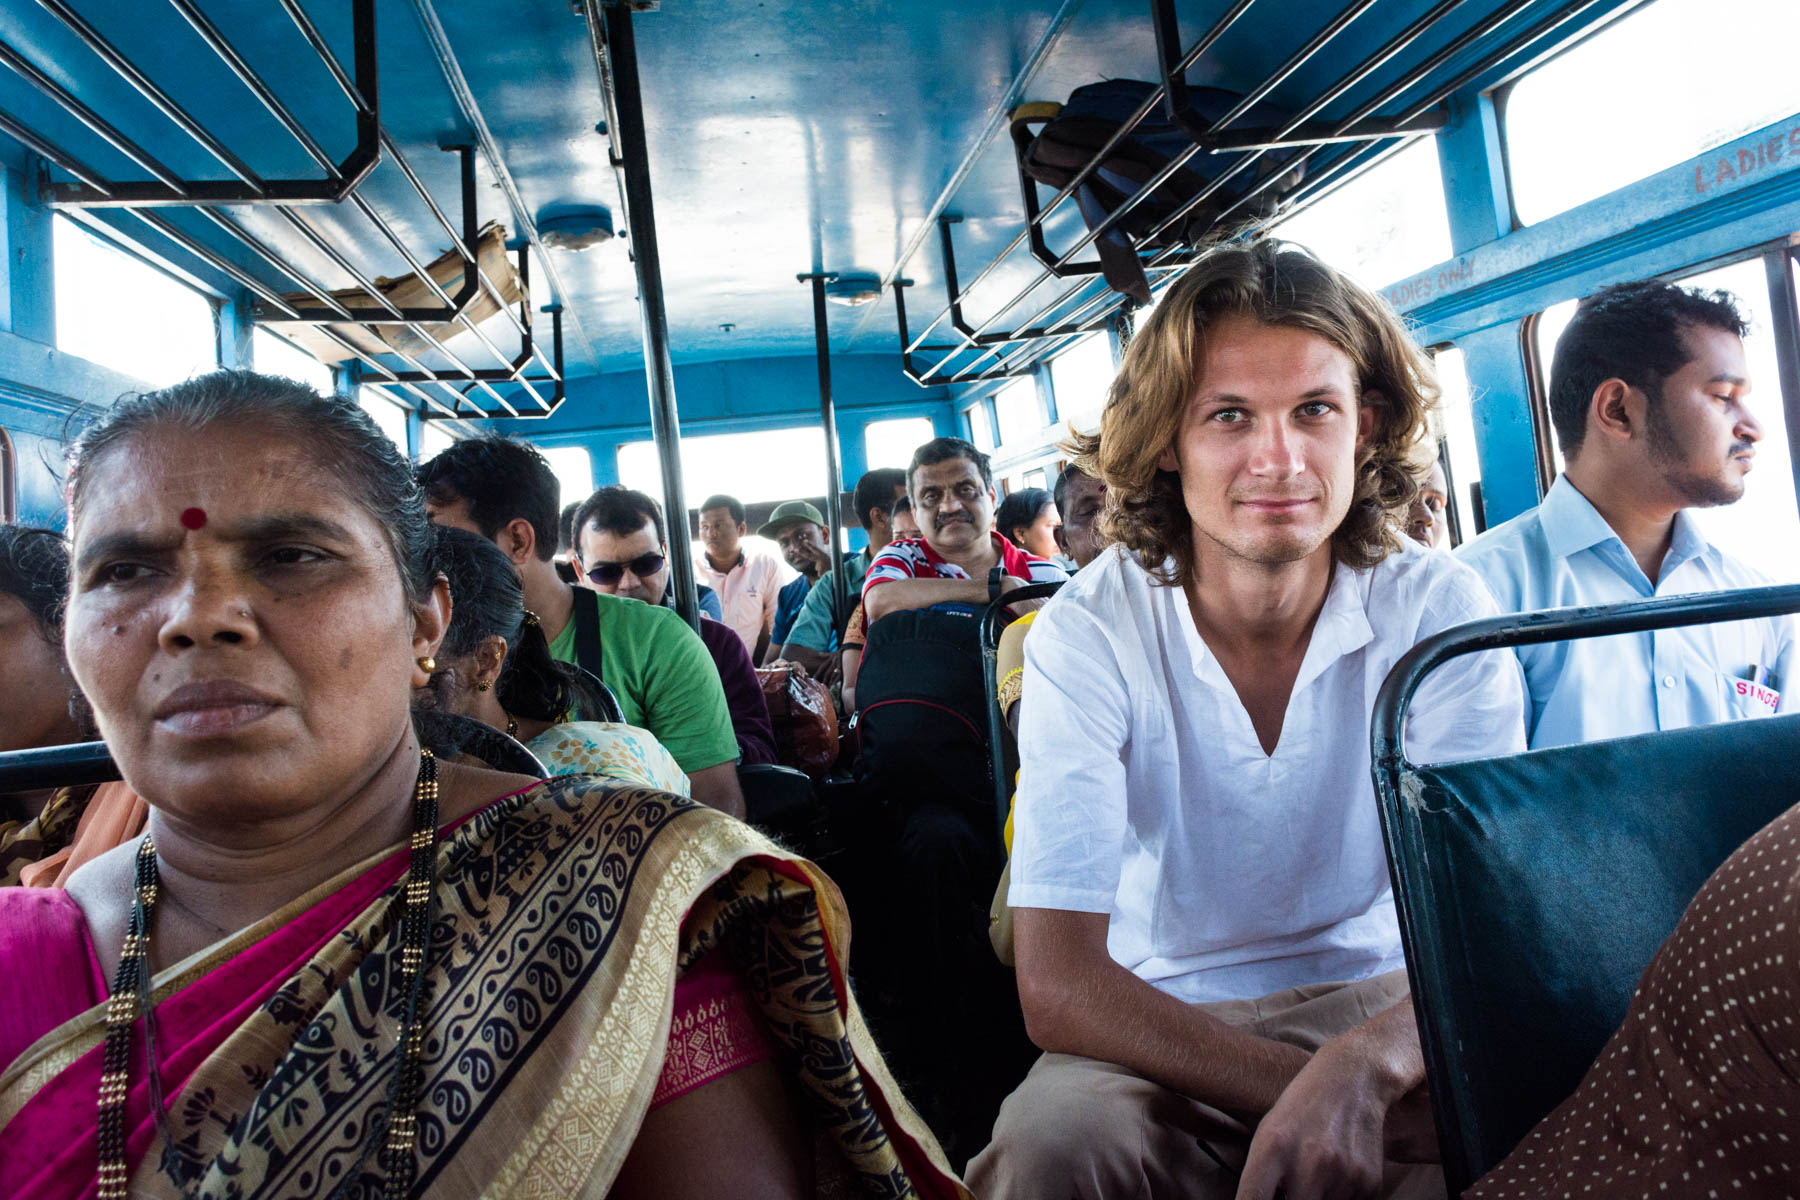 Riding a government bus in Goa, India - Lost With Purpose